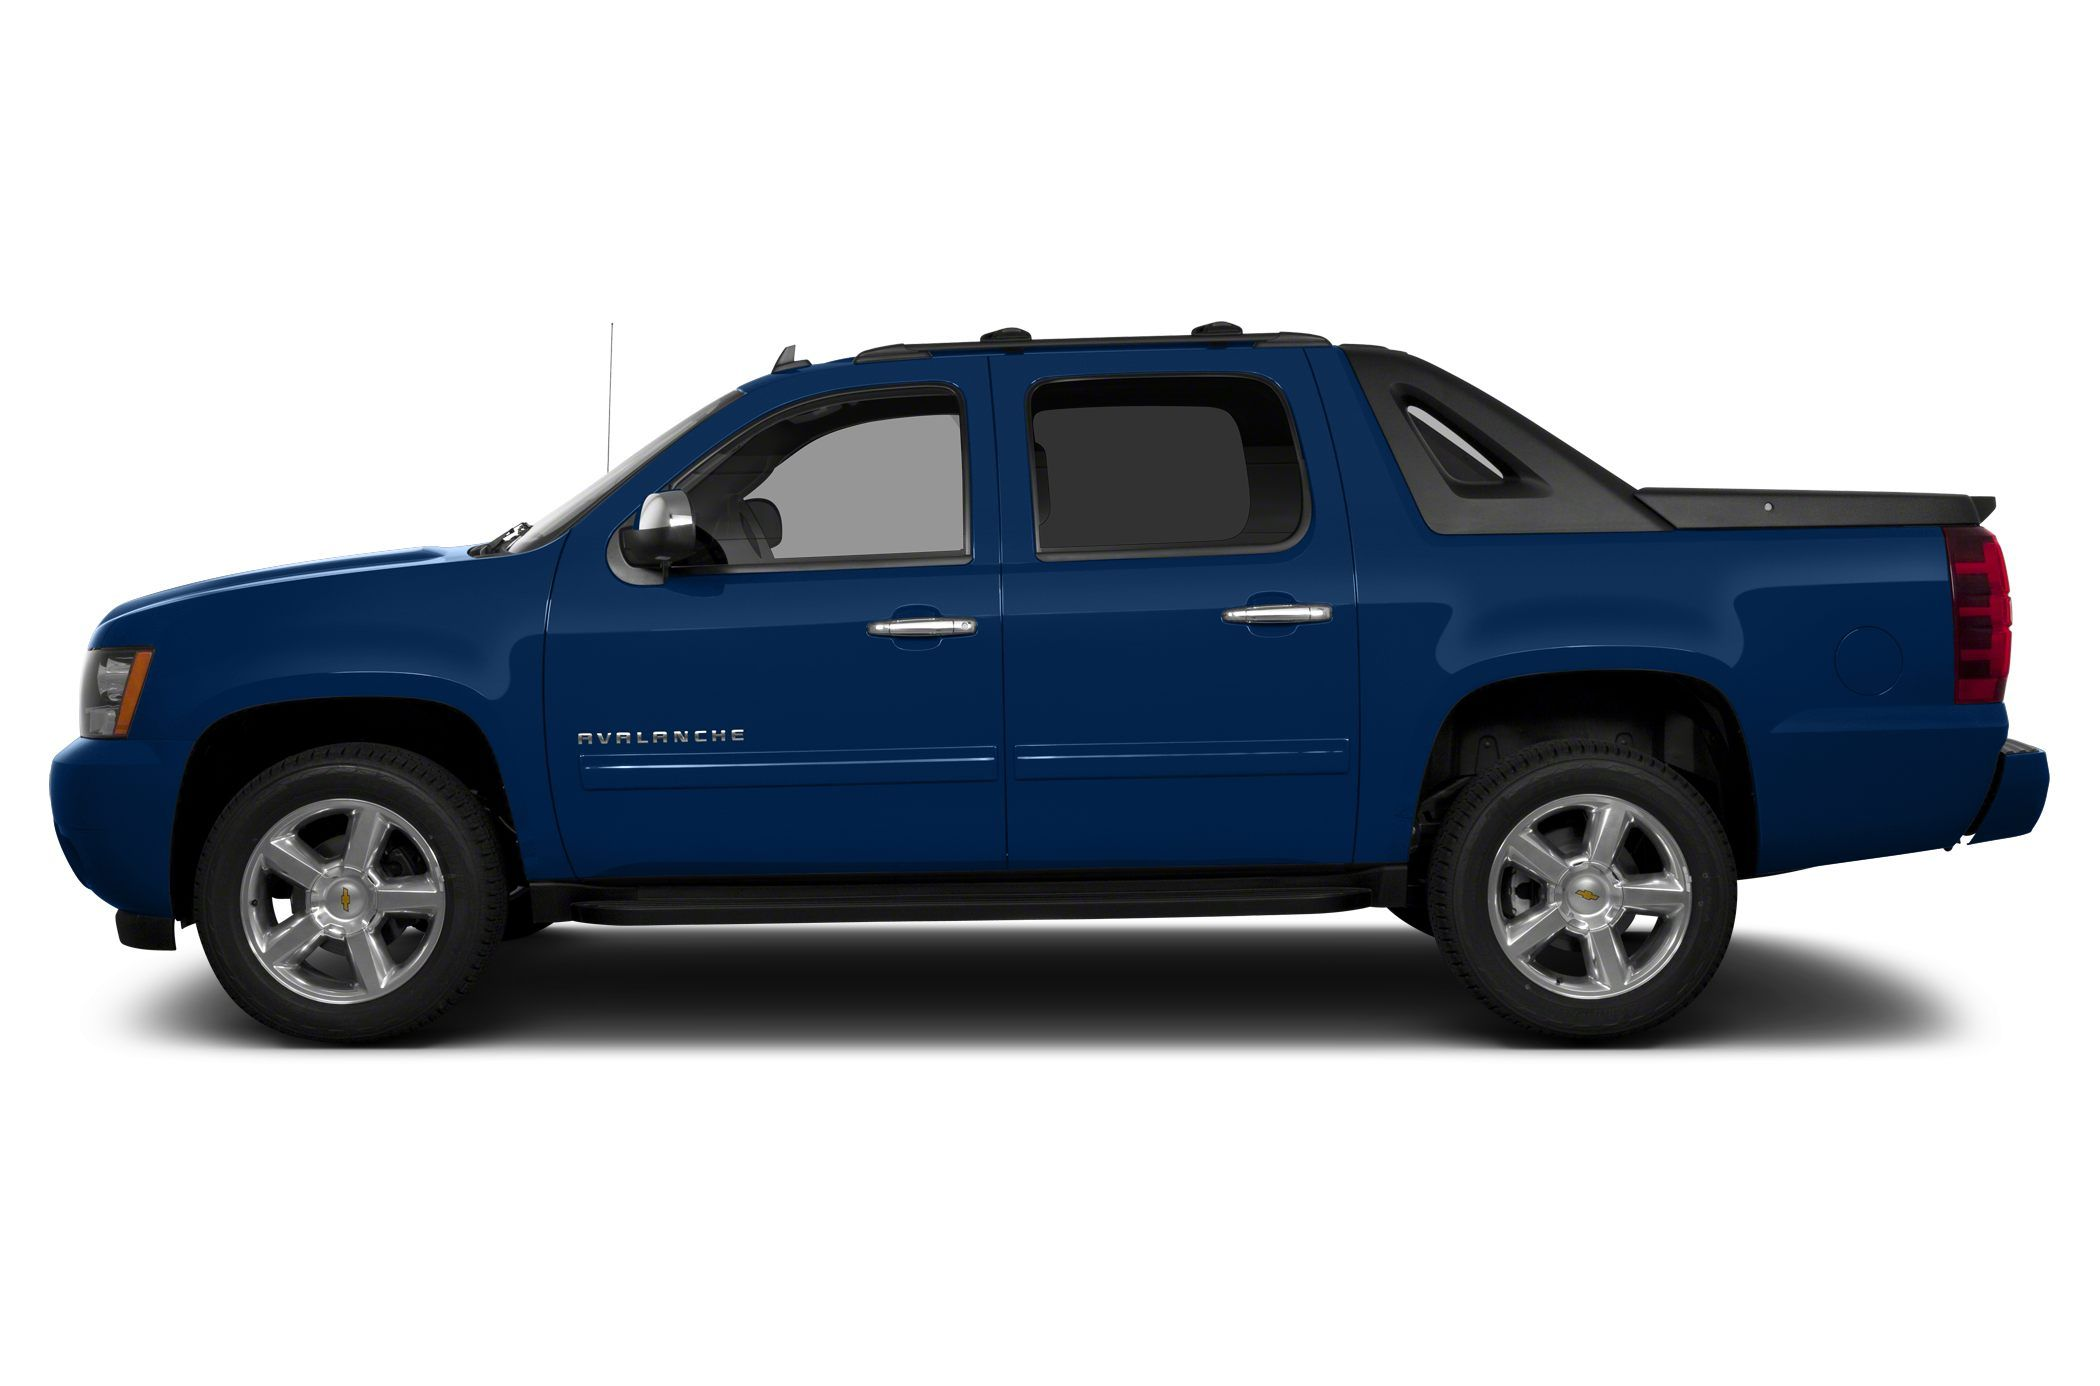 Chevrolet Avalanche Wikipedia >> Trucks Similar To Chevy Avalanche | Autos Post